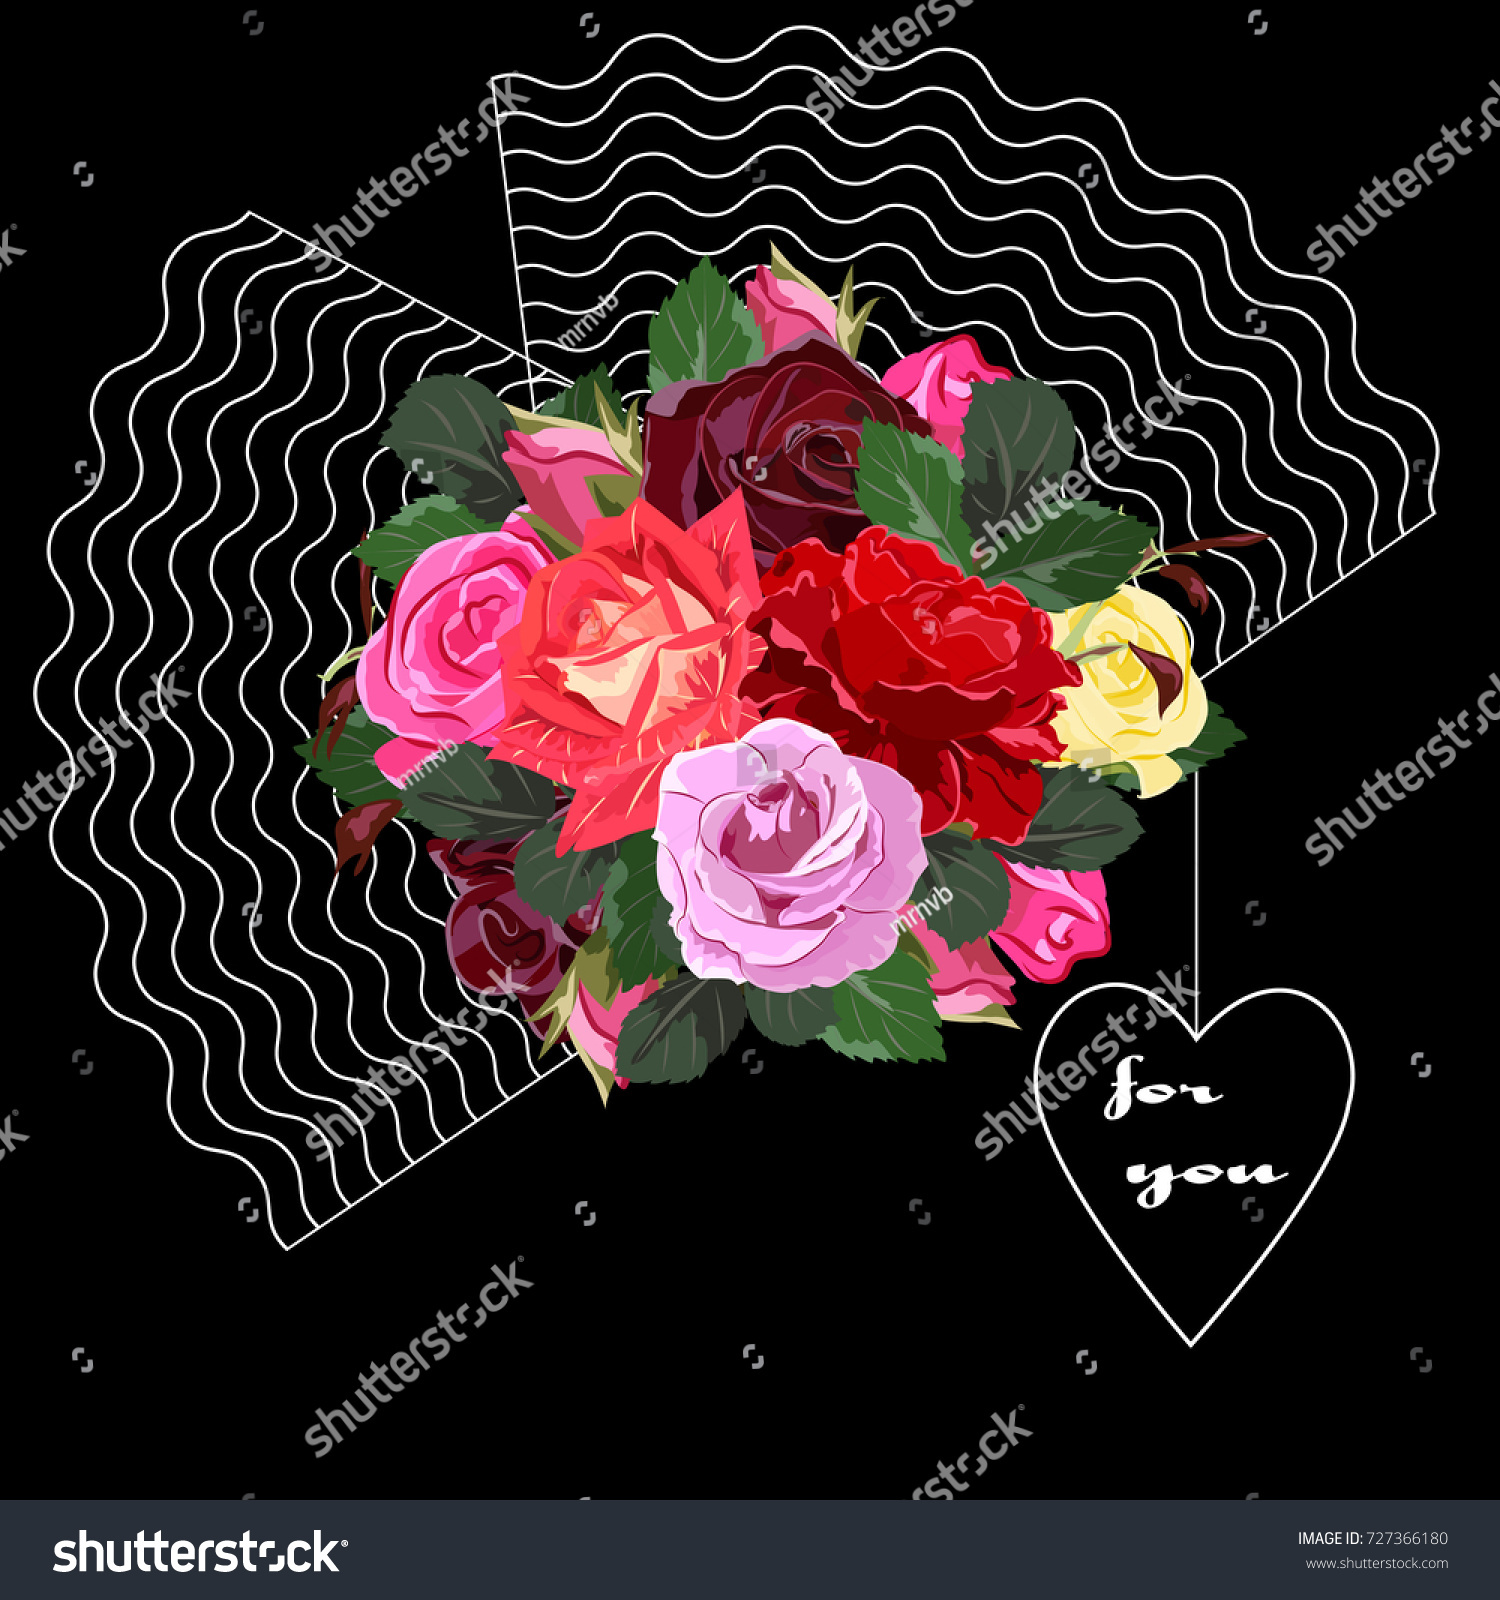 Bouquet Red Pink Burgundy Roses Decor Stock Vector (Royalty Free ...